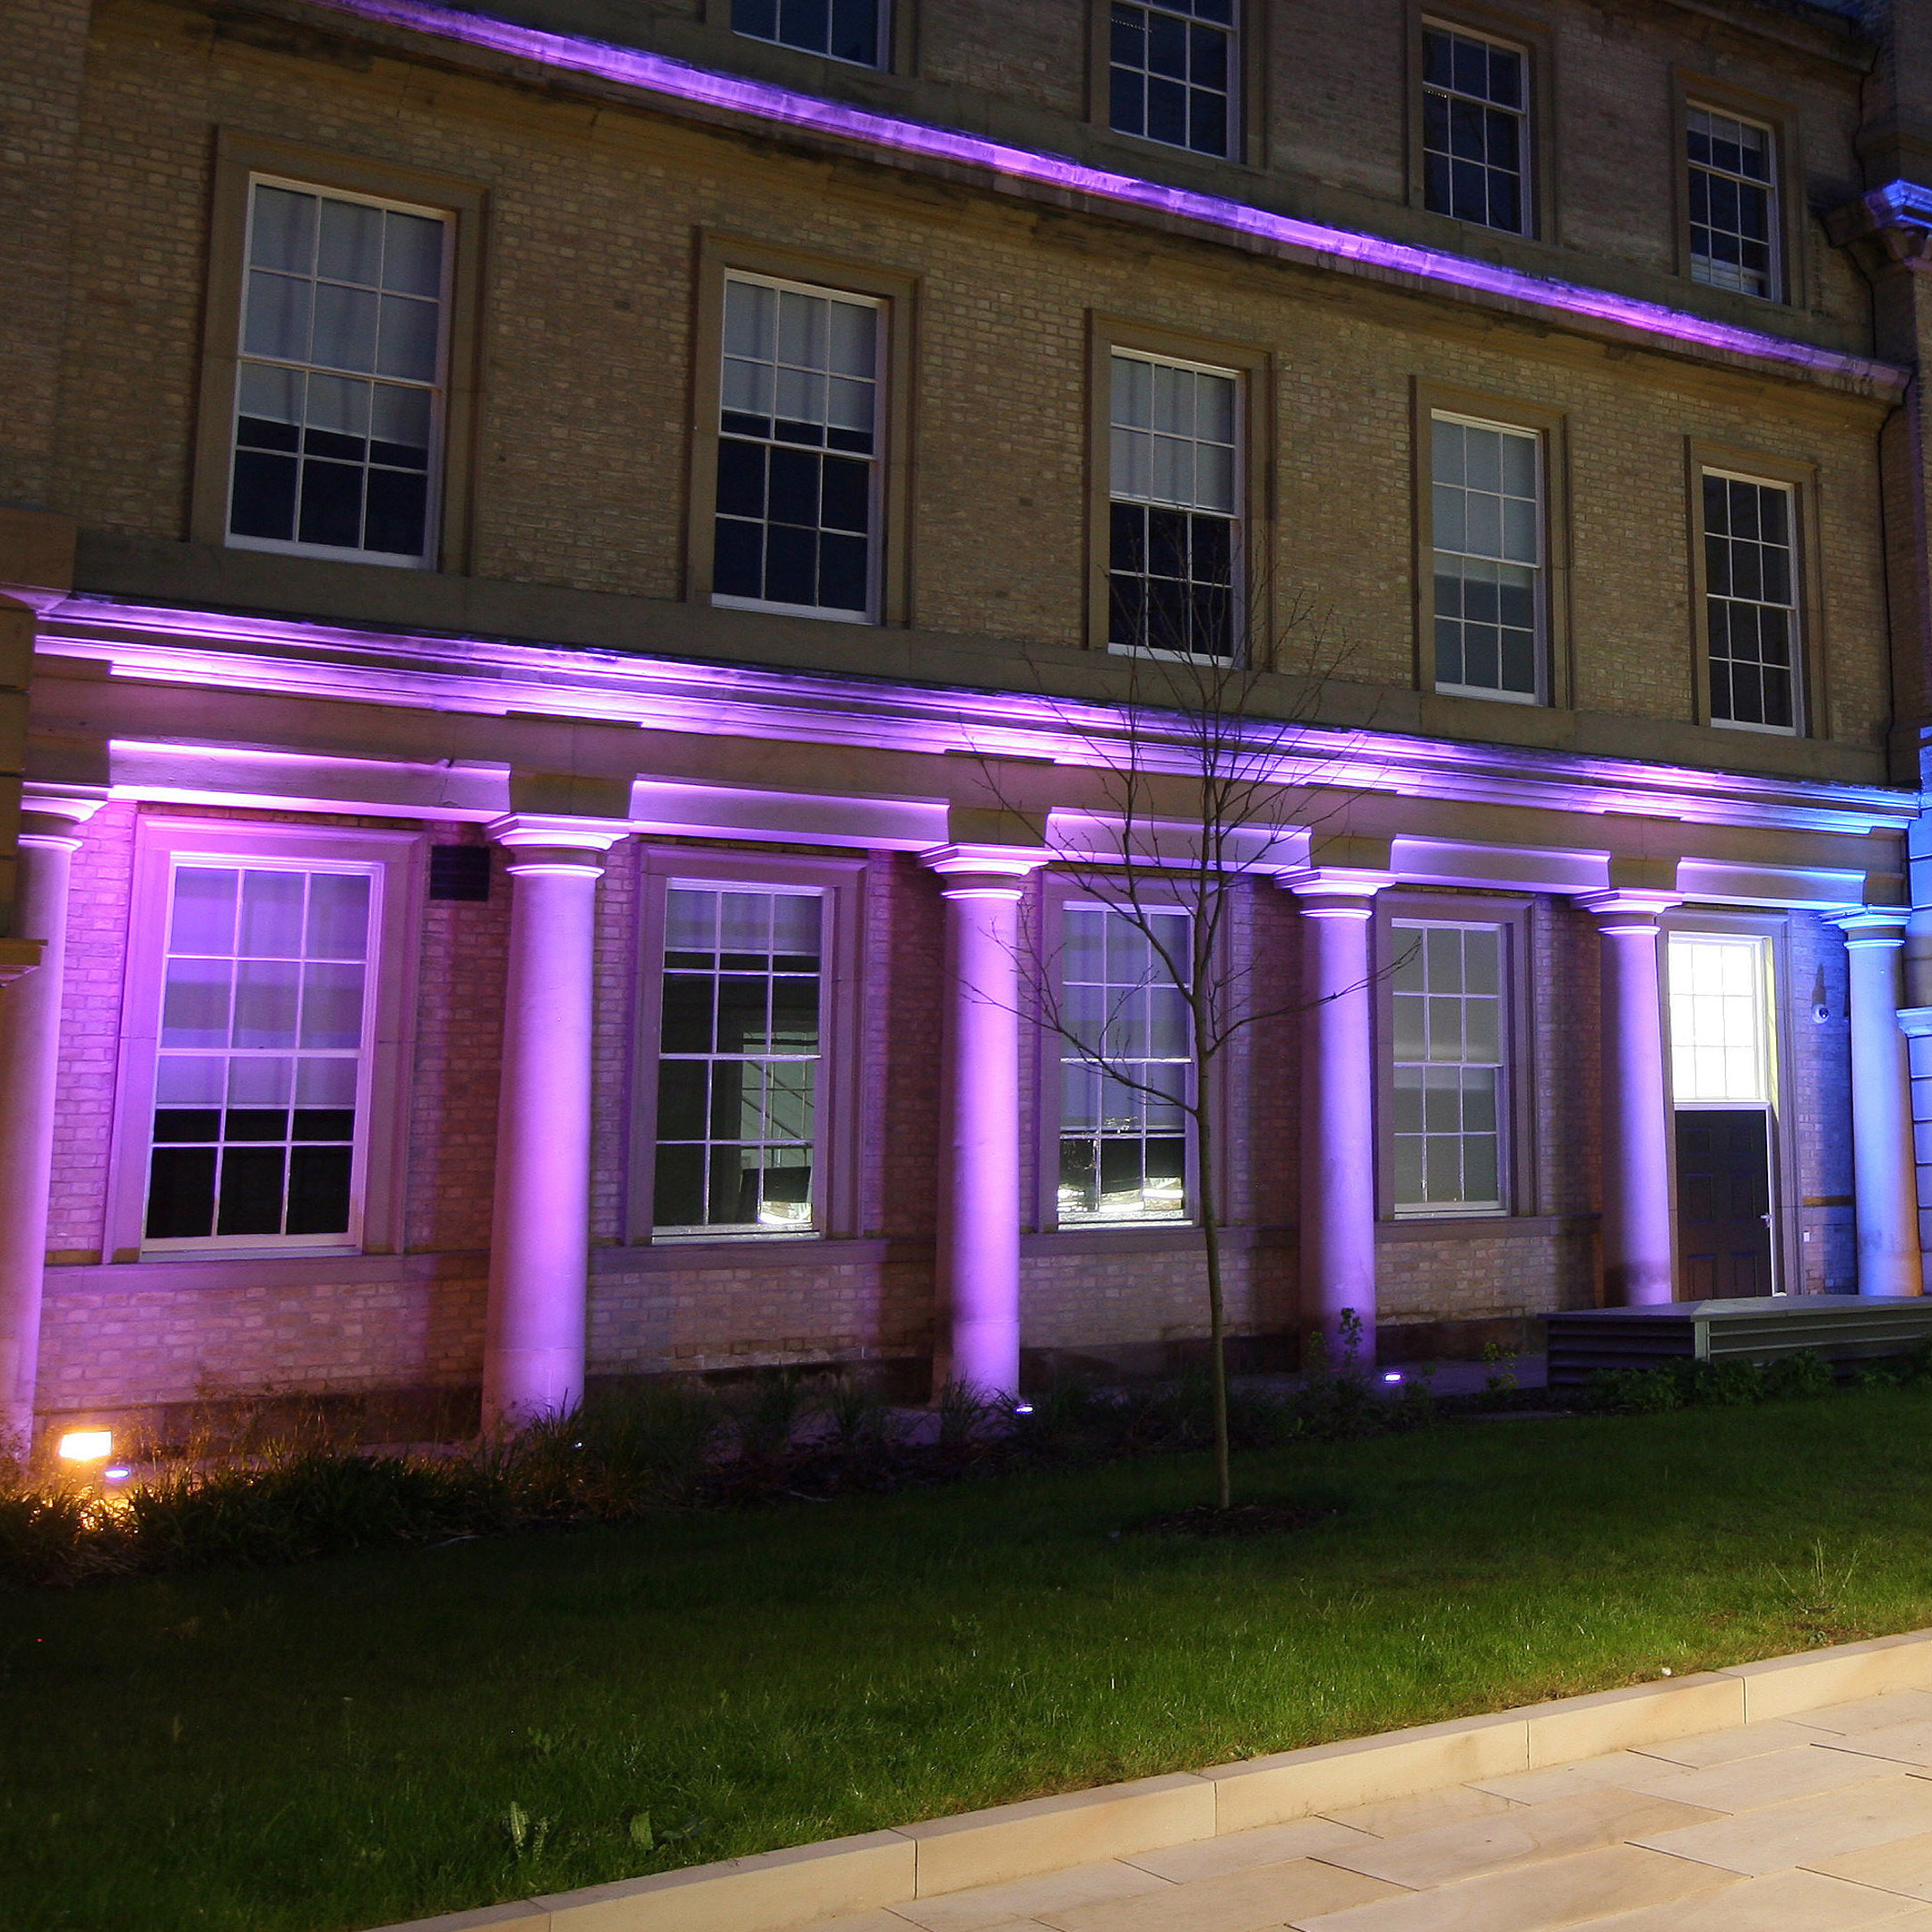 york city council external lighting